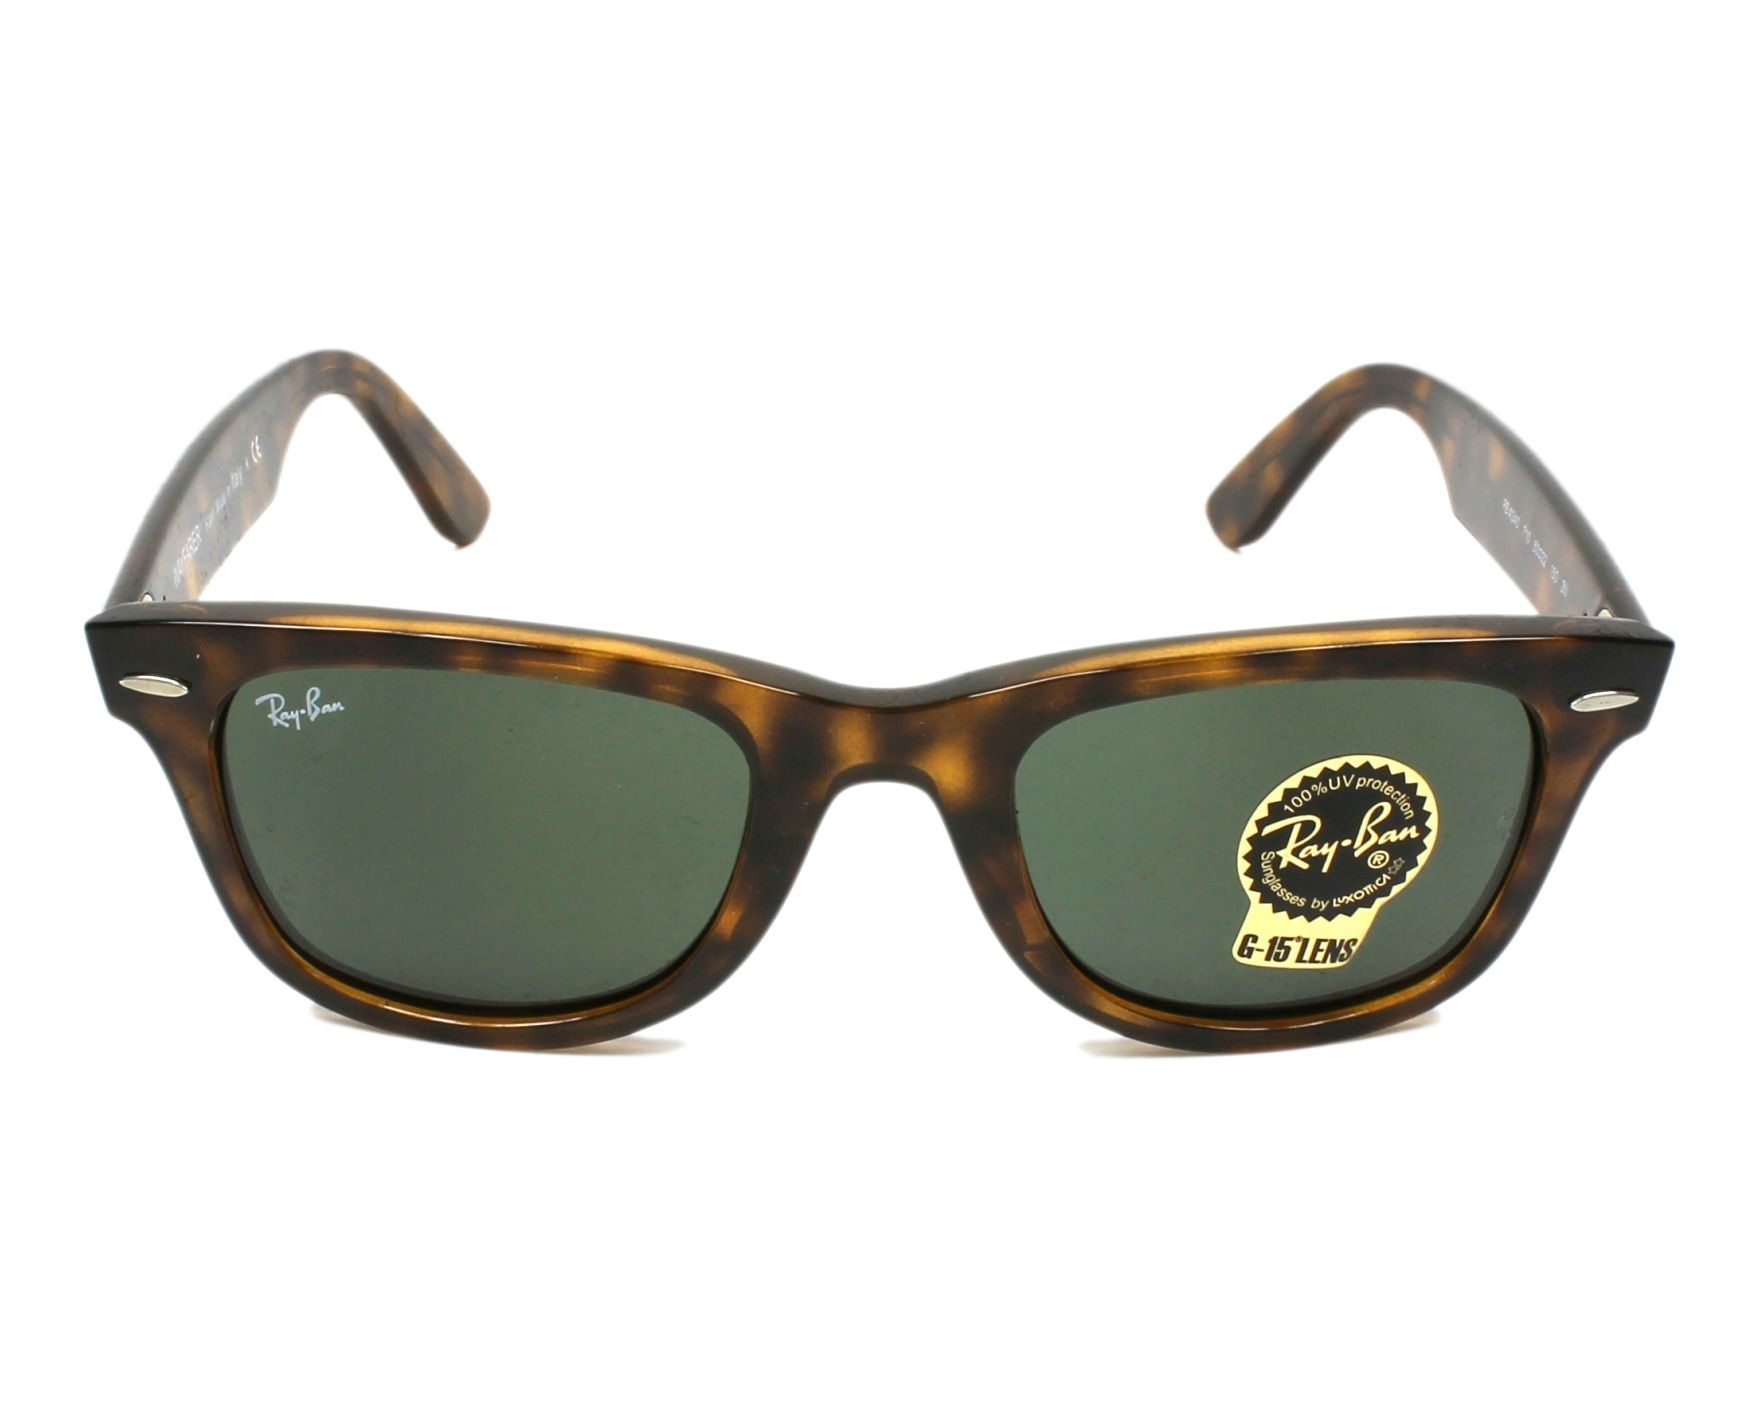 Sunglasses Ray-Ban RB-4340 710 50-22 Havana front view 9bcd4e09f25